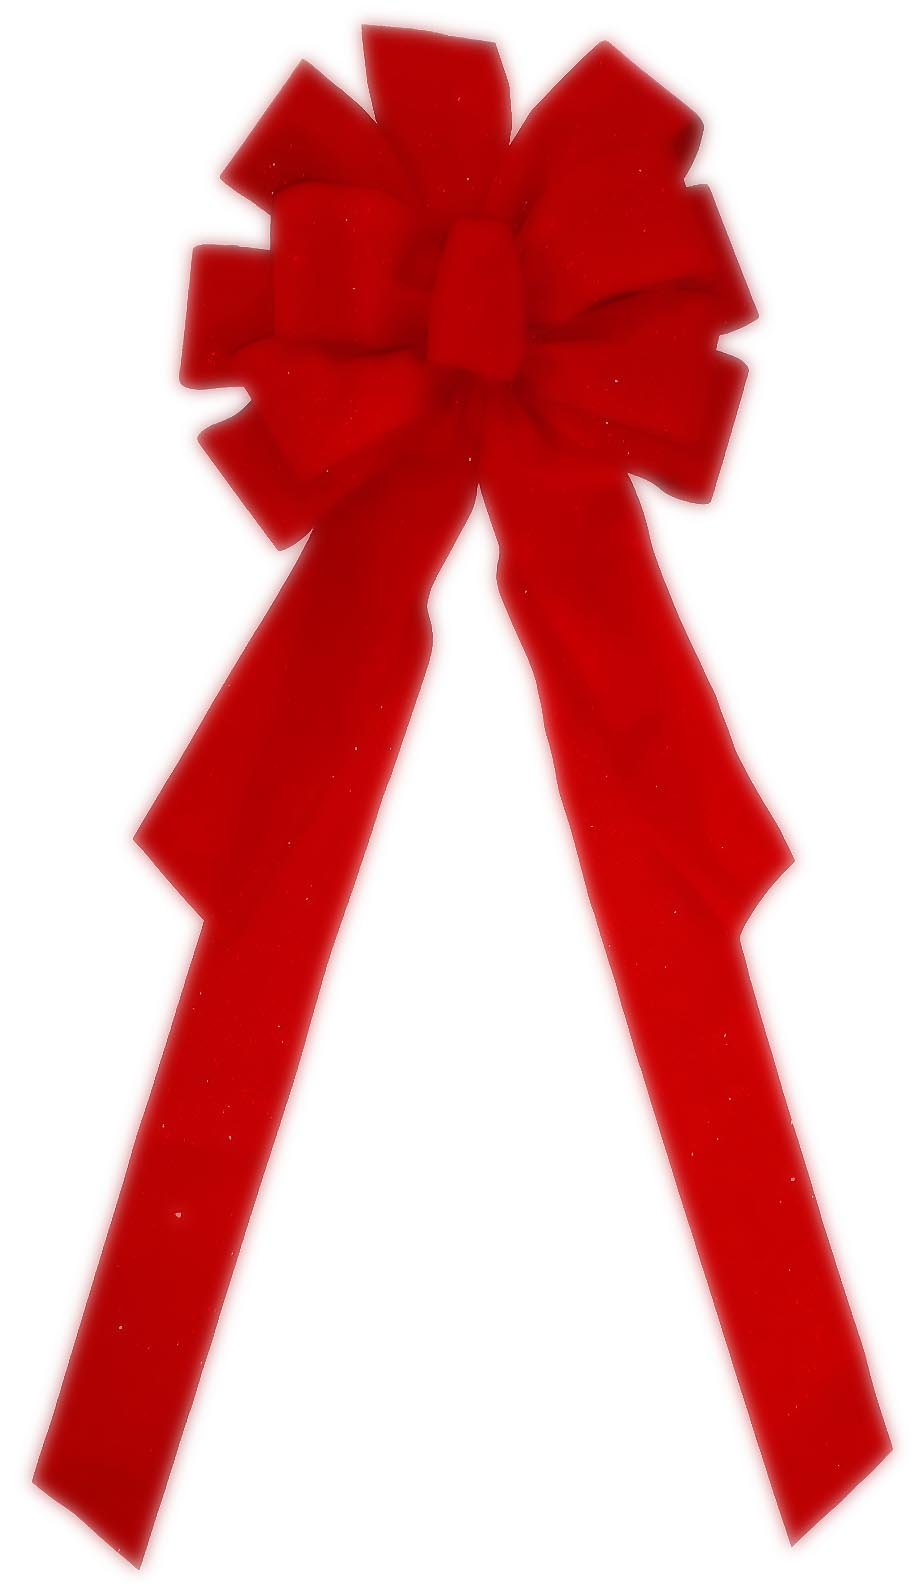 """Large Red Bow 10 Loops 30"""" X 11"""" Velvet #0351567 ~ Indoor or Outdoor Holiday Christmas Decoration for Front Door Tree Wreath Garage House Windows Office Classroom Hotel Fireplace Mantle Church School Decorations Etc."""